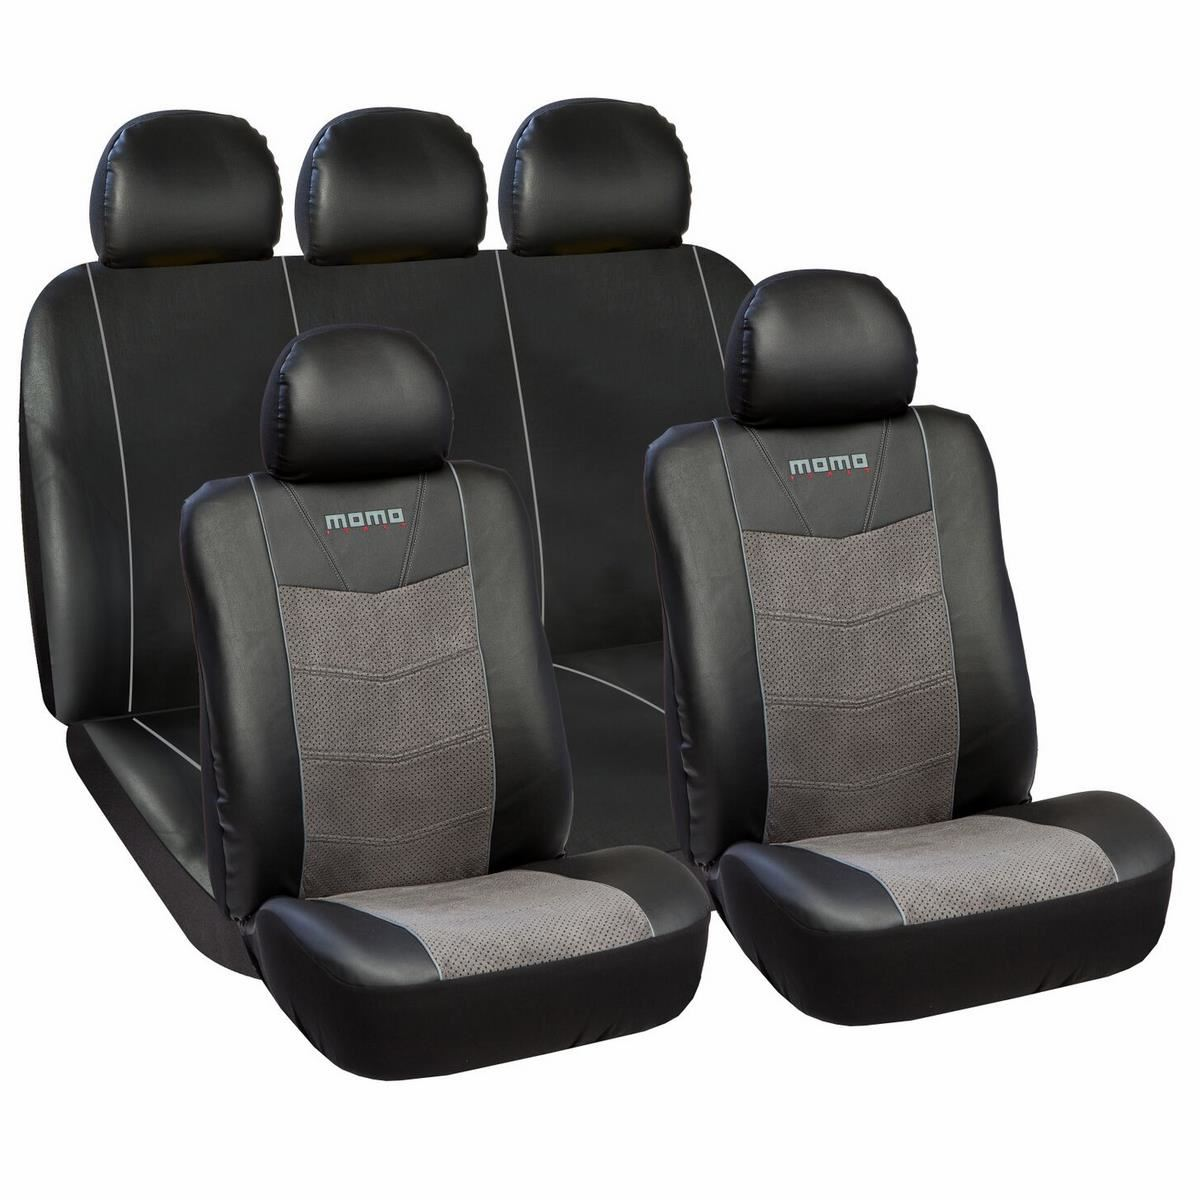 momo car seat covers momo pvc suede 11 pieces set. Black Bedroom Furniture Sets. Home Design Ideas